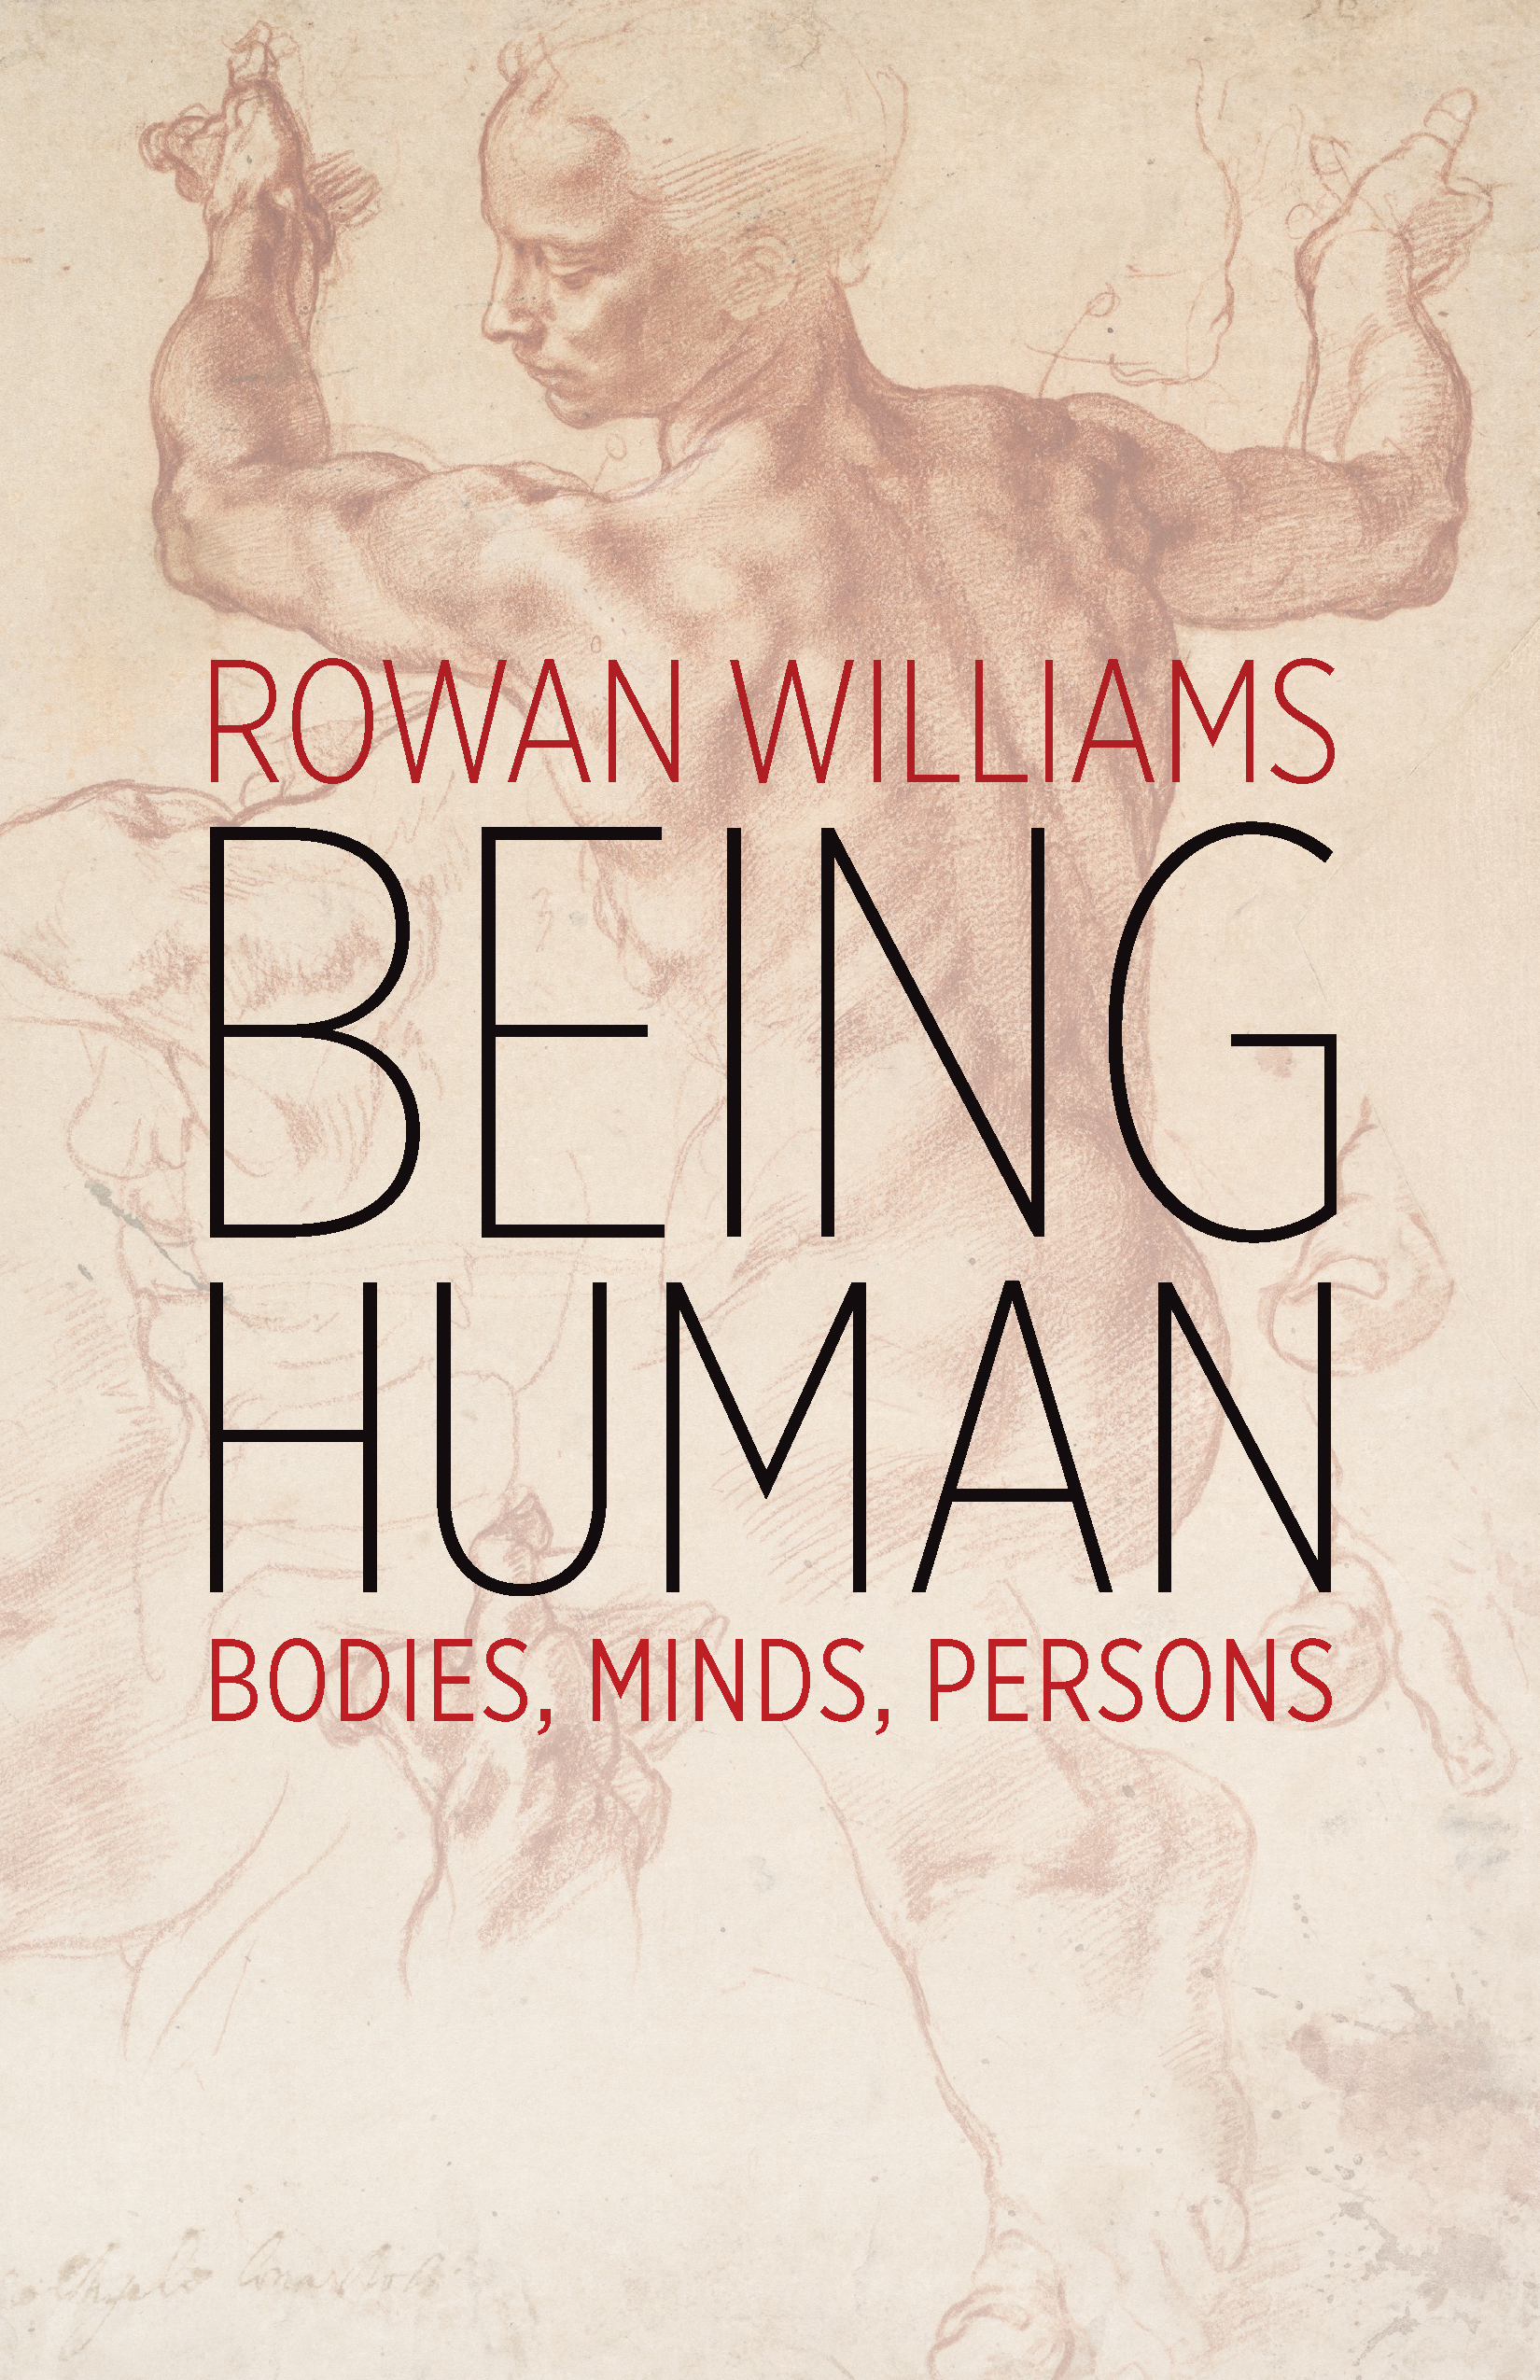 Being Human Bodies, Minds, Persons